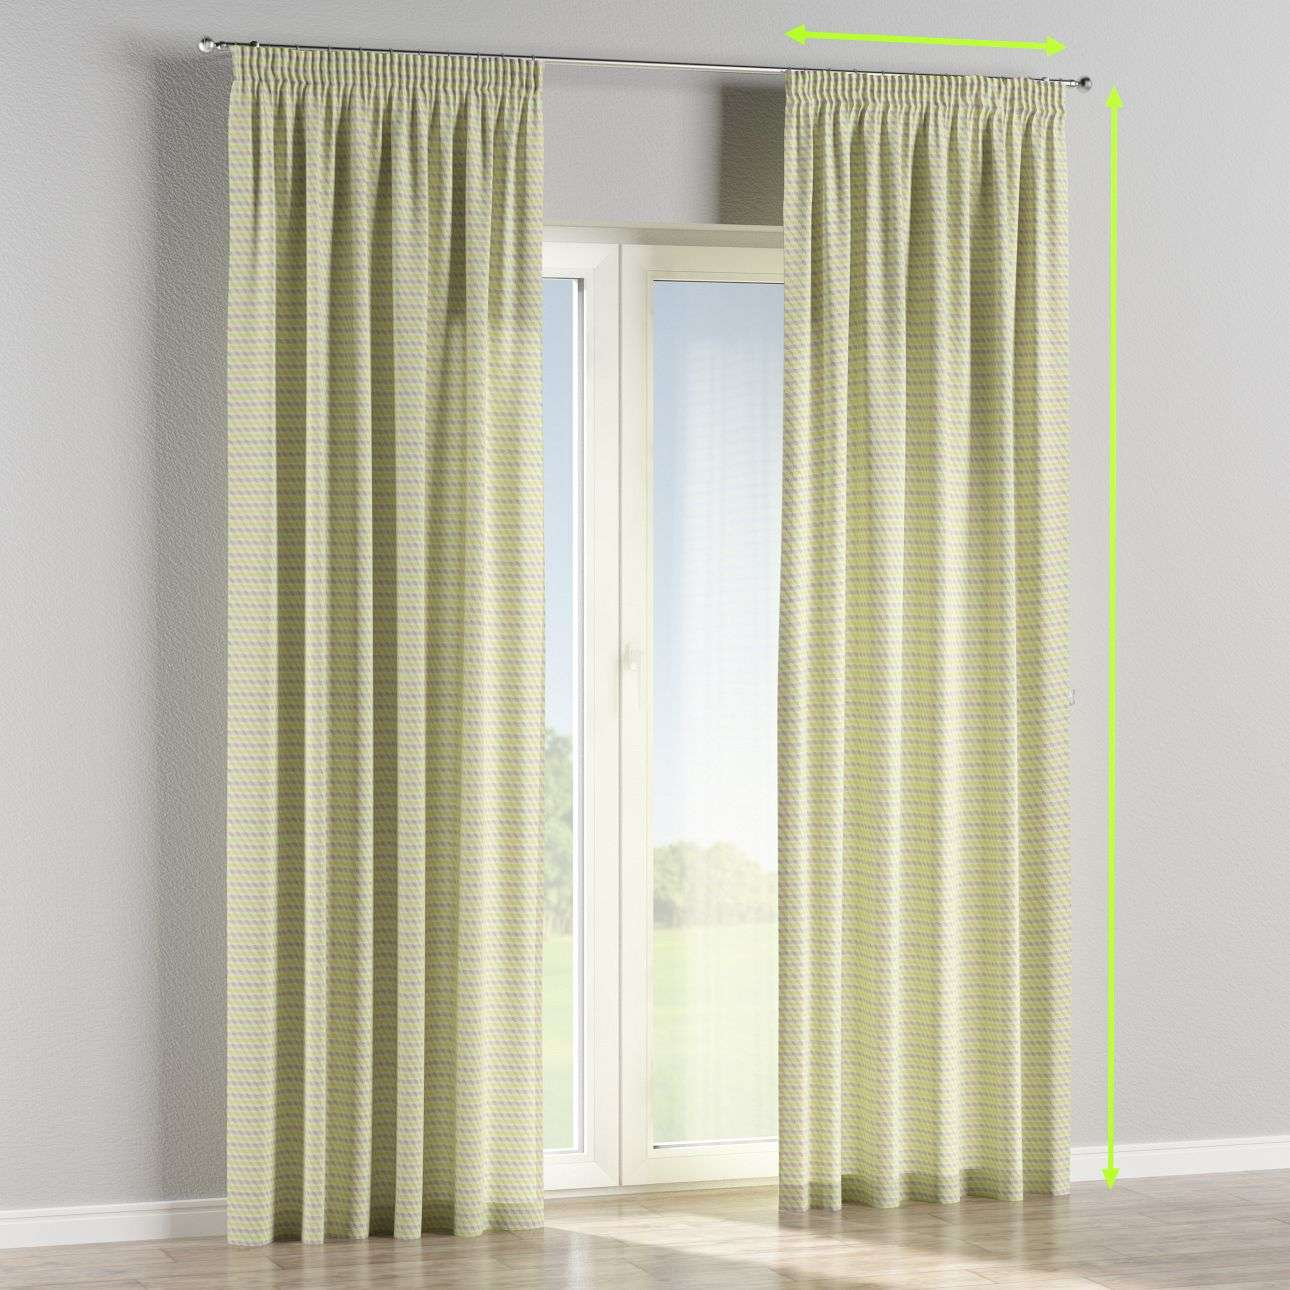 Pencil pleat curtain in collection SALE, fabric: 140-36